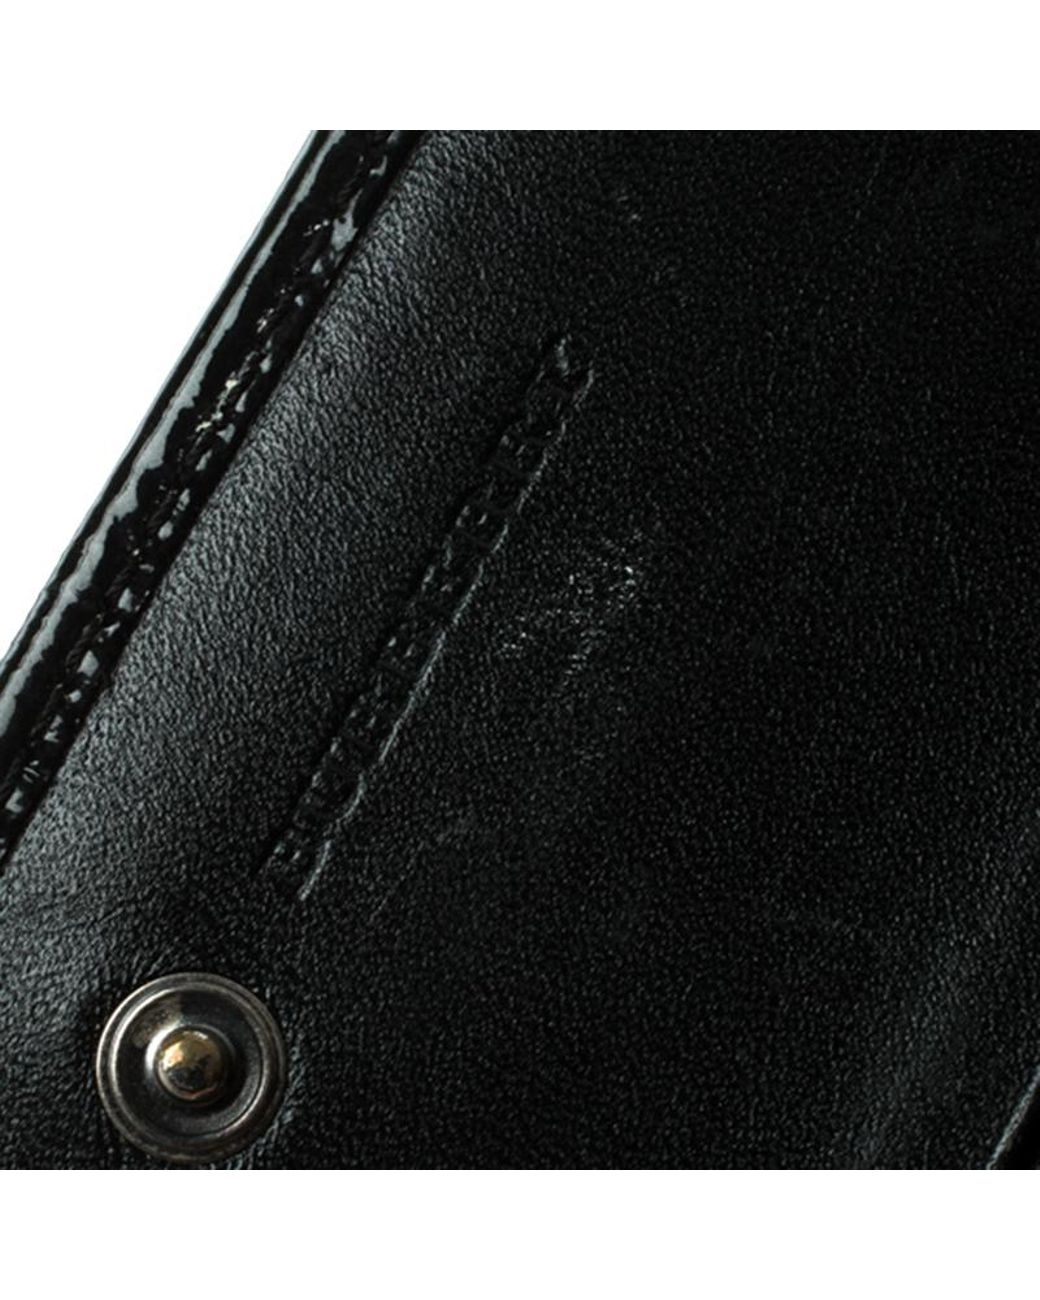 260122b914c0 Burberry Beat Check Nylon And Patent Leather Penrose Continental Wallet in  Black - Lyst